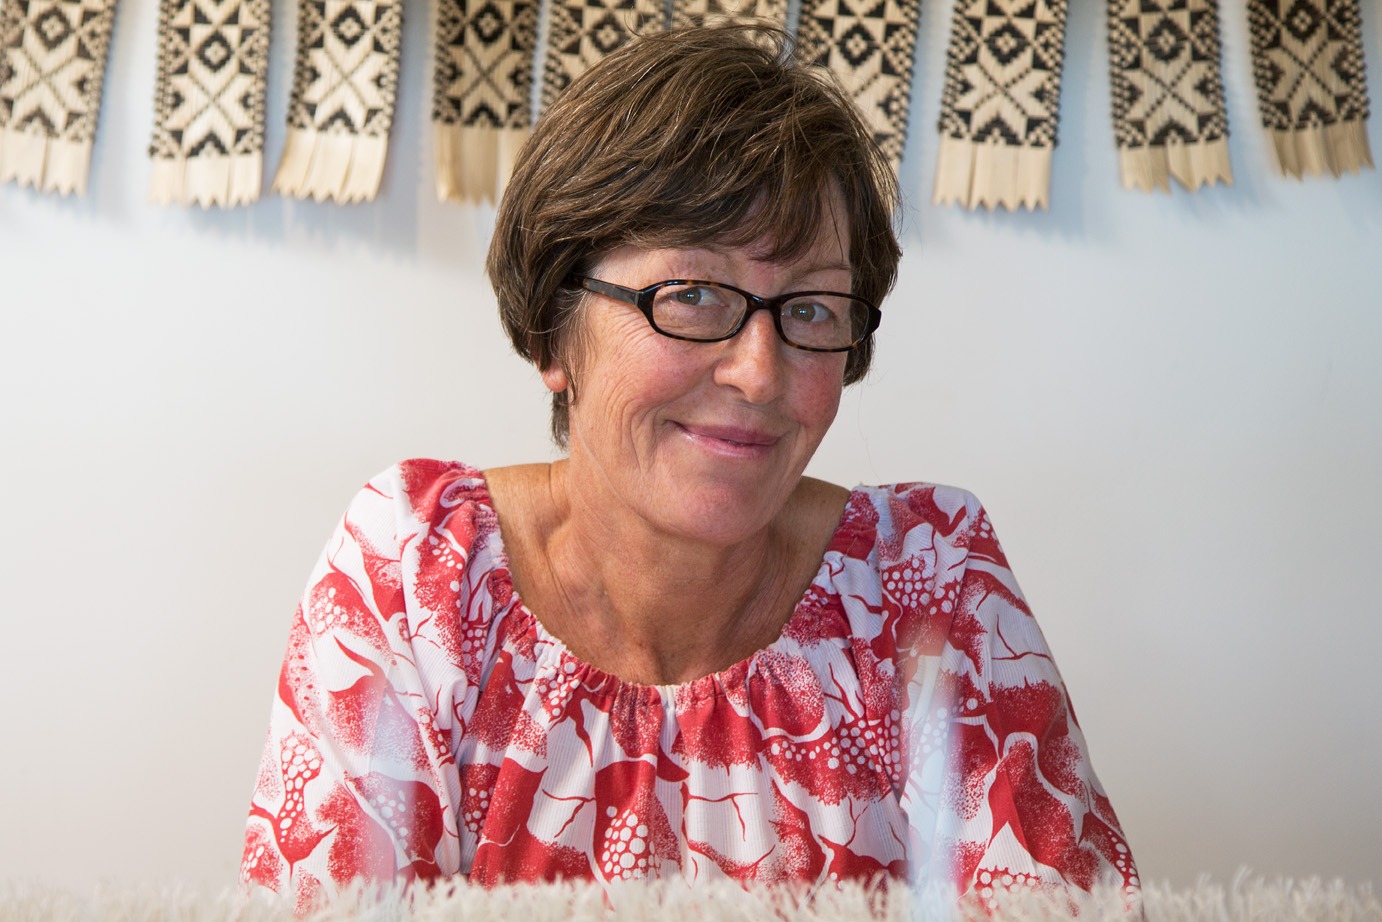 CHRISTINE Brimer - designer, weaver   After working in scientific research and in the not for profit sector I studied Textile Design as a mature student at Massey University's College of Creative Arts in Wellington. Sustainable design considerations underpinned our exploration of materiality and processes. Weaving resonated with me and establishing a studio practice enables me to continue to focus on the potential of strong and undyed New Zealand wool in contemporary, sustainable design. In my studio overlooking Wellington's South coast I weave my designs  on an AVL Compudobby IV loom, beautifully crafted in California from American Ash. It is a wonderful interface of mechanical and digital technologies. Like all looms, and the musical instruments they resemble, it requires care and tuning to play at its best. As I get aquainted with this beautiful machine, it has become an extension of my thinking and of my hands.  With weaving I have found my niche - the place where I belong and can contribute from.